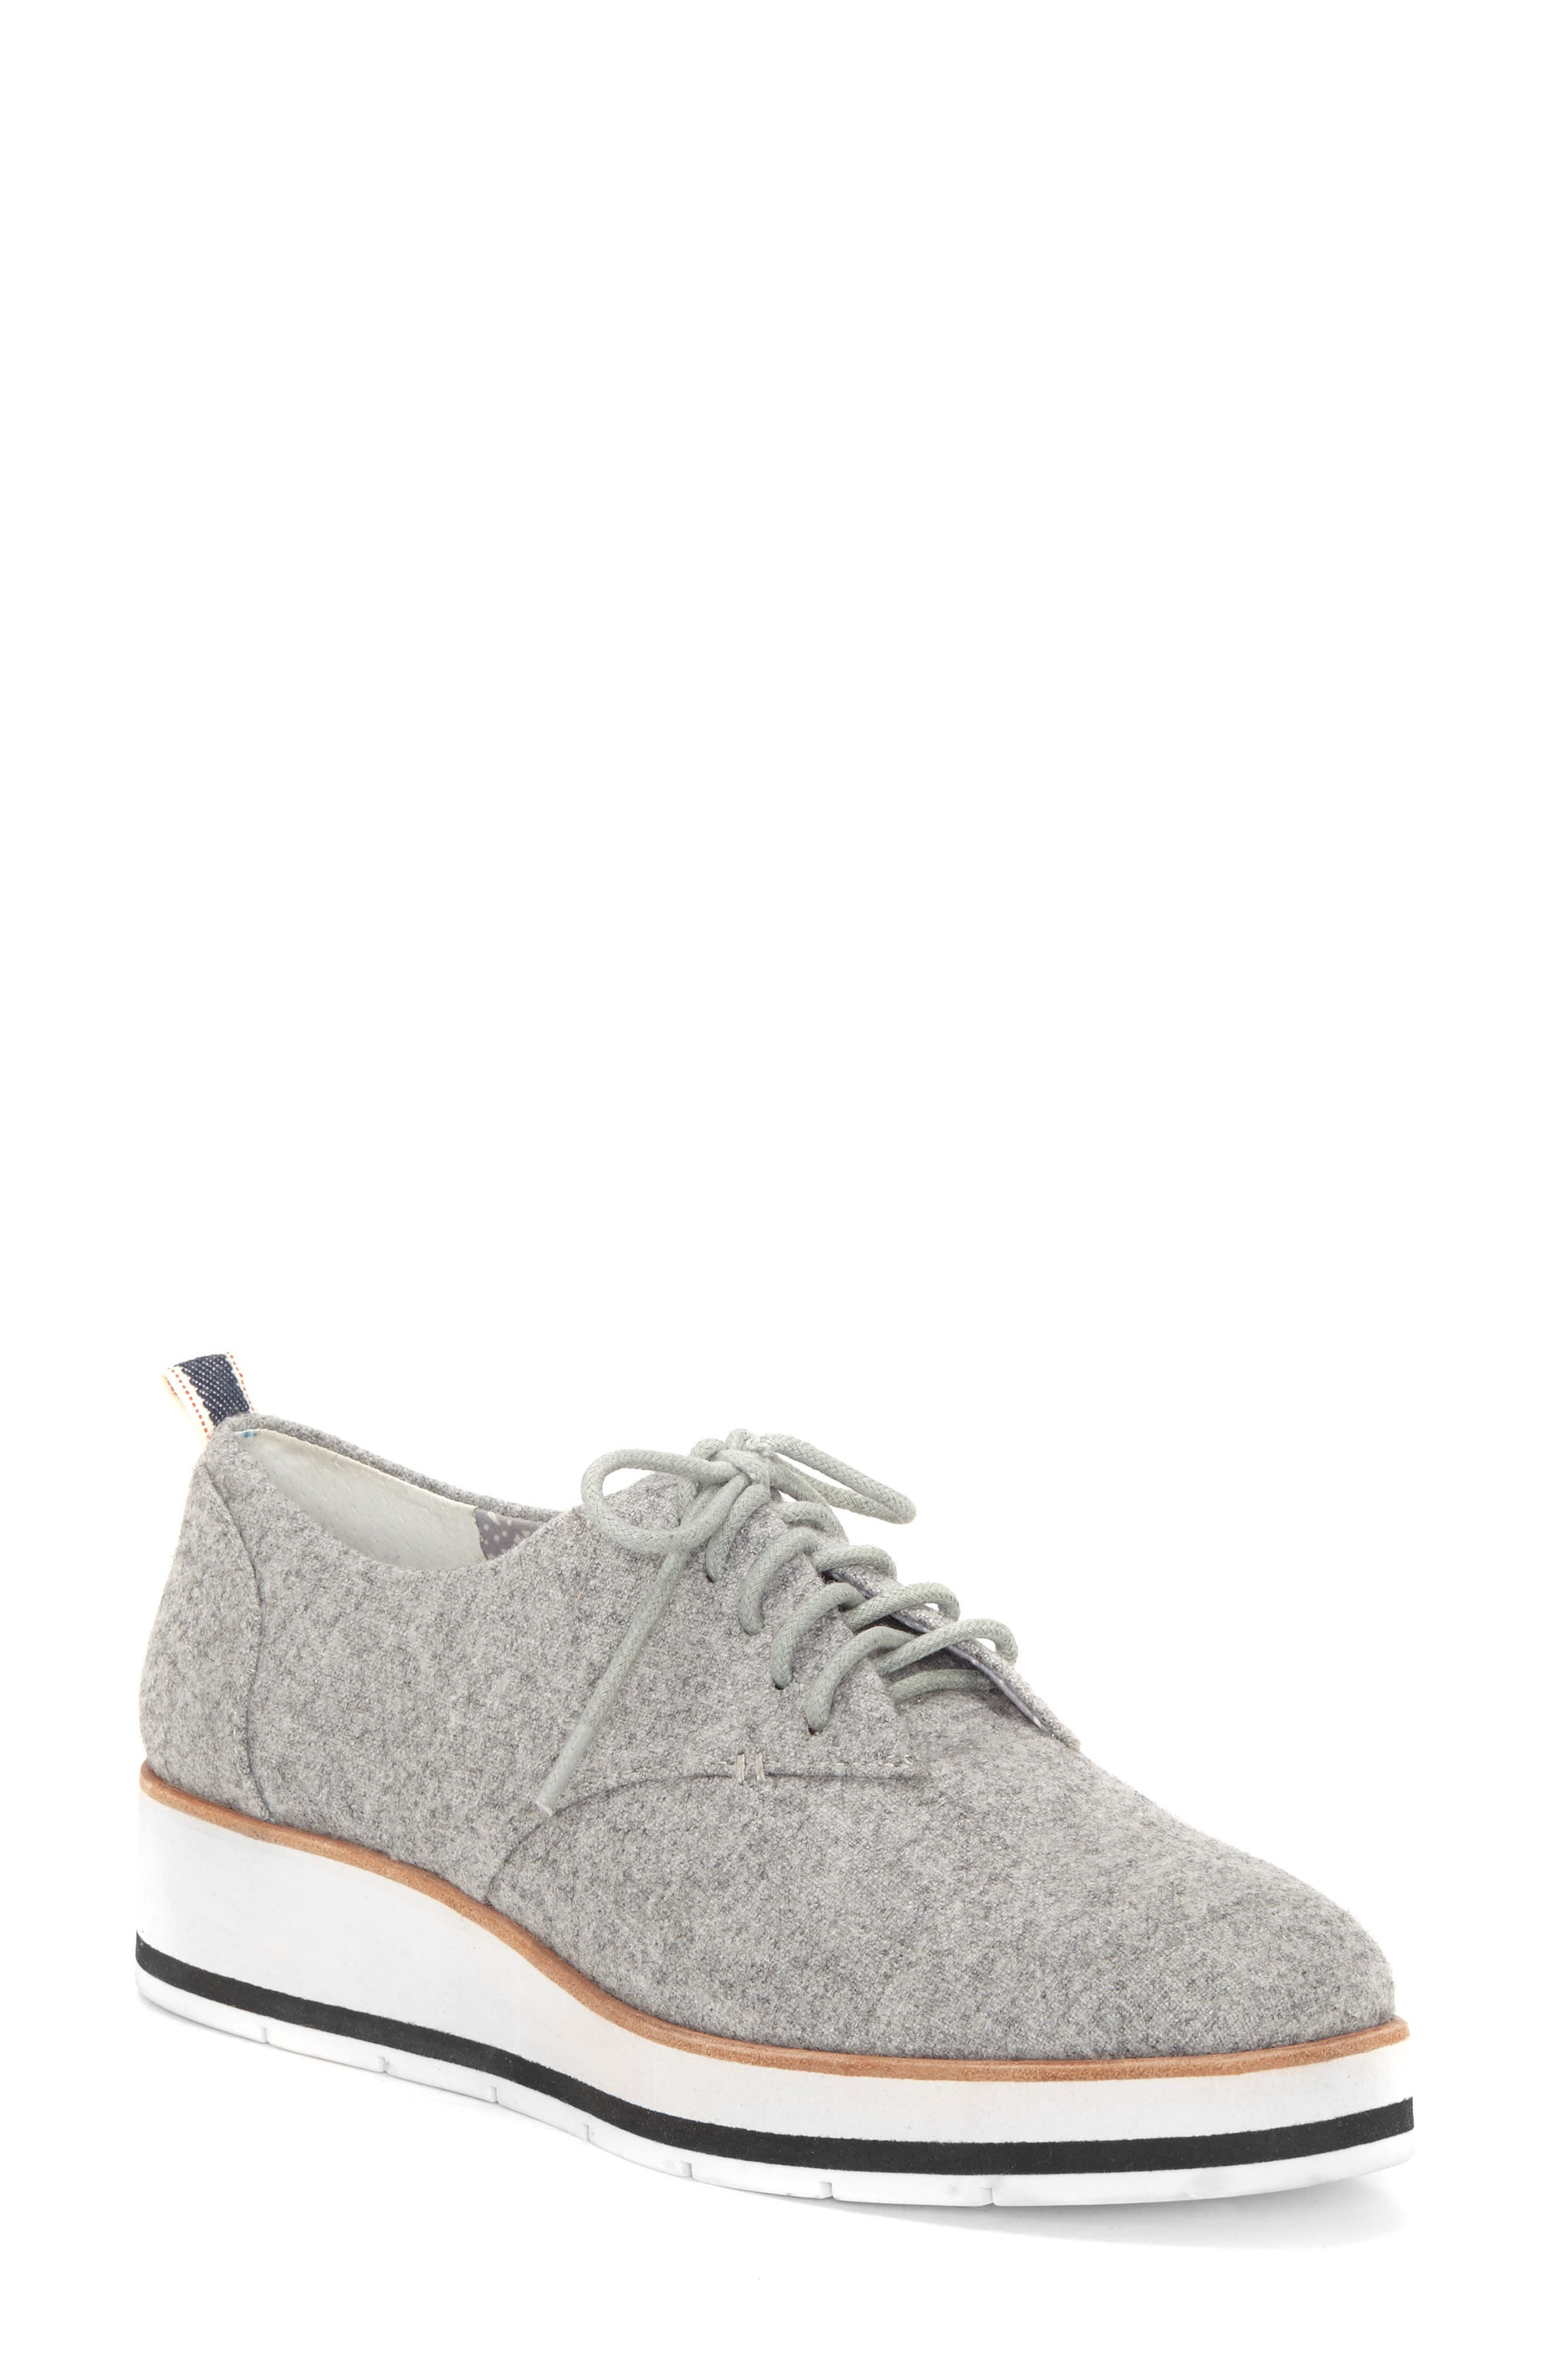 Alternate Image 1 Selected - ED Ellen DeGeneres 'Oberlin' Oxford (Women)